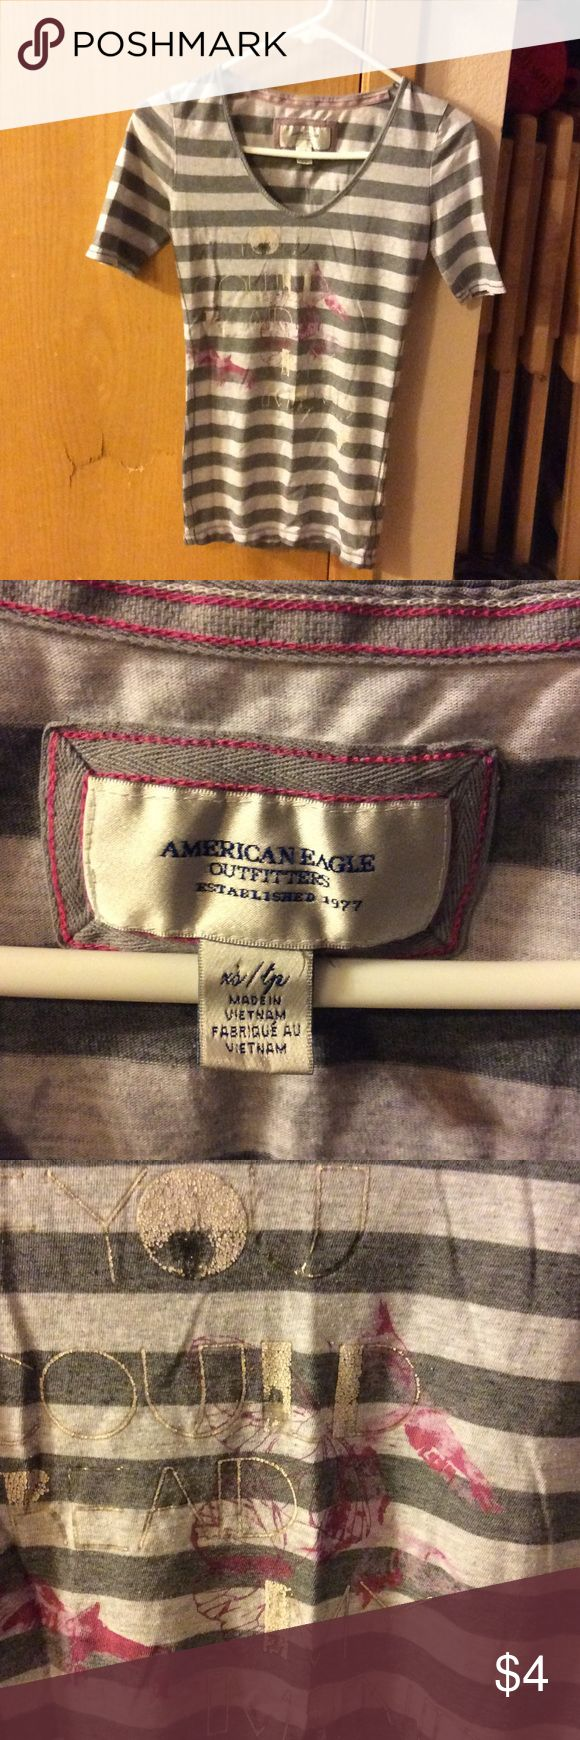 American Eagle Outfitters Tshirt, Size XS This shirts does have some life left in it and it is in good condition. The writing on the front is wearing off. The only thing wrong with the shirt. American Eagle Outfitters Tops Tees - Short Sleeve